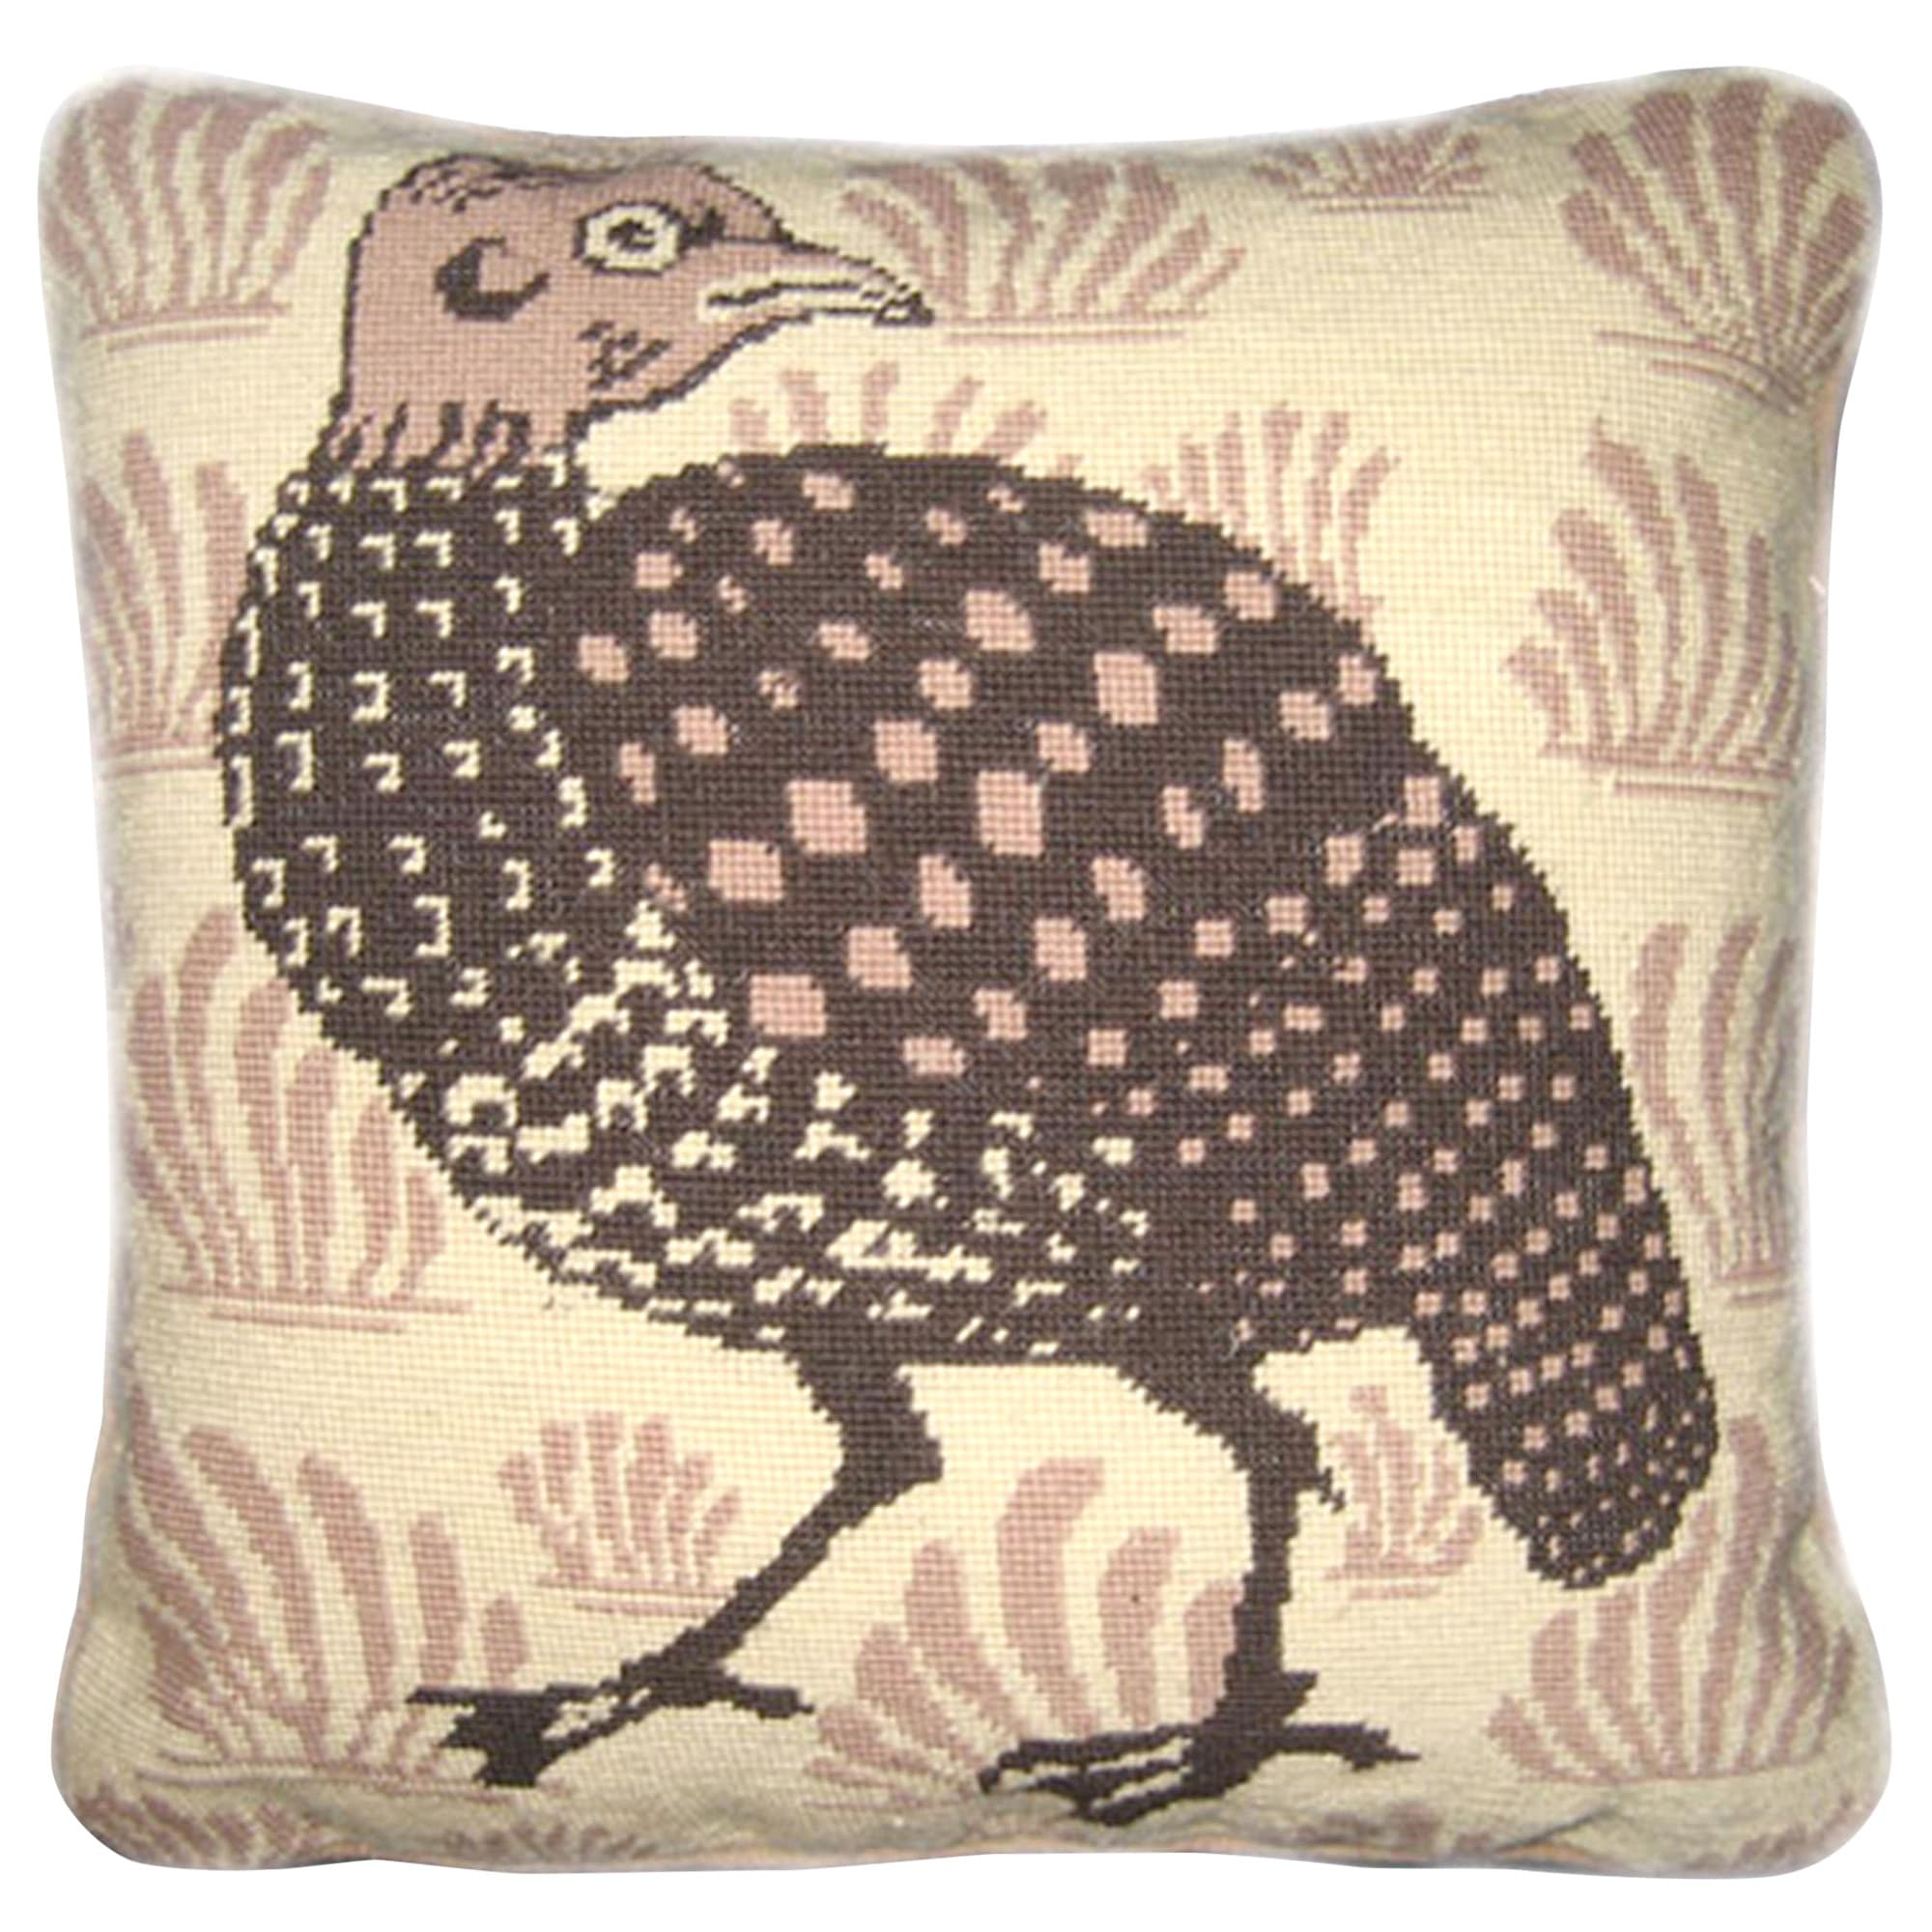 Fine Cell Work William De Morgan Grouse Needlepoint Cushion Kit